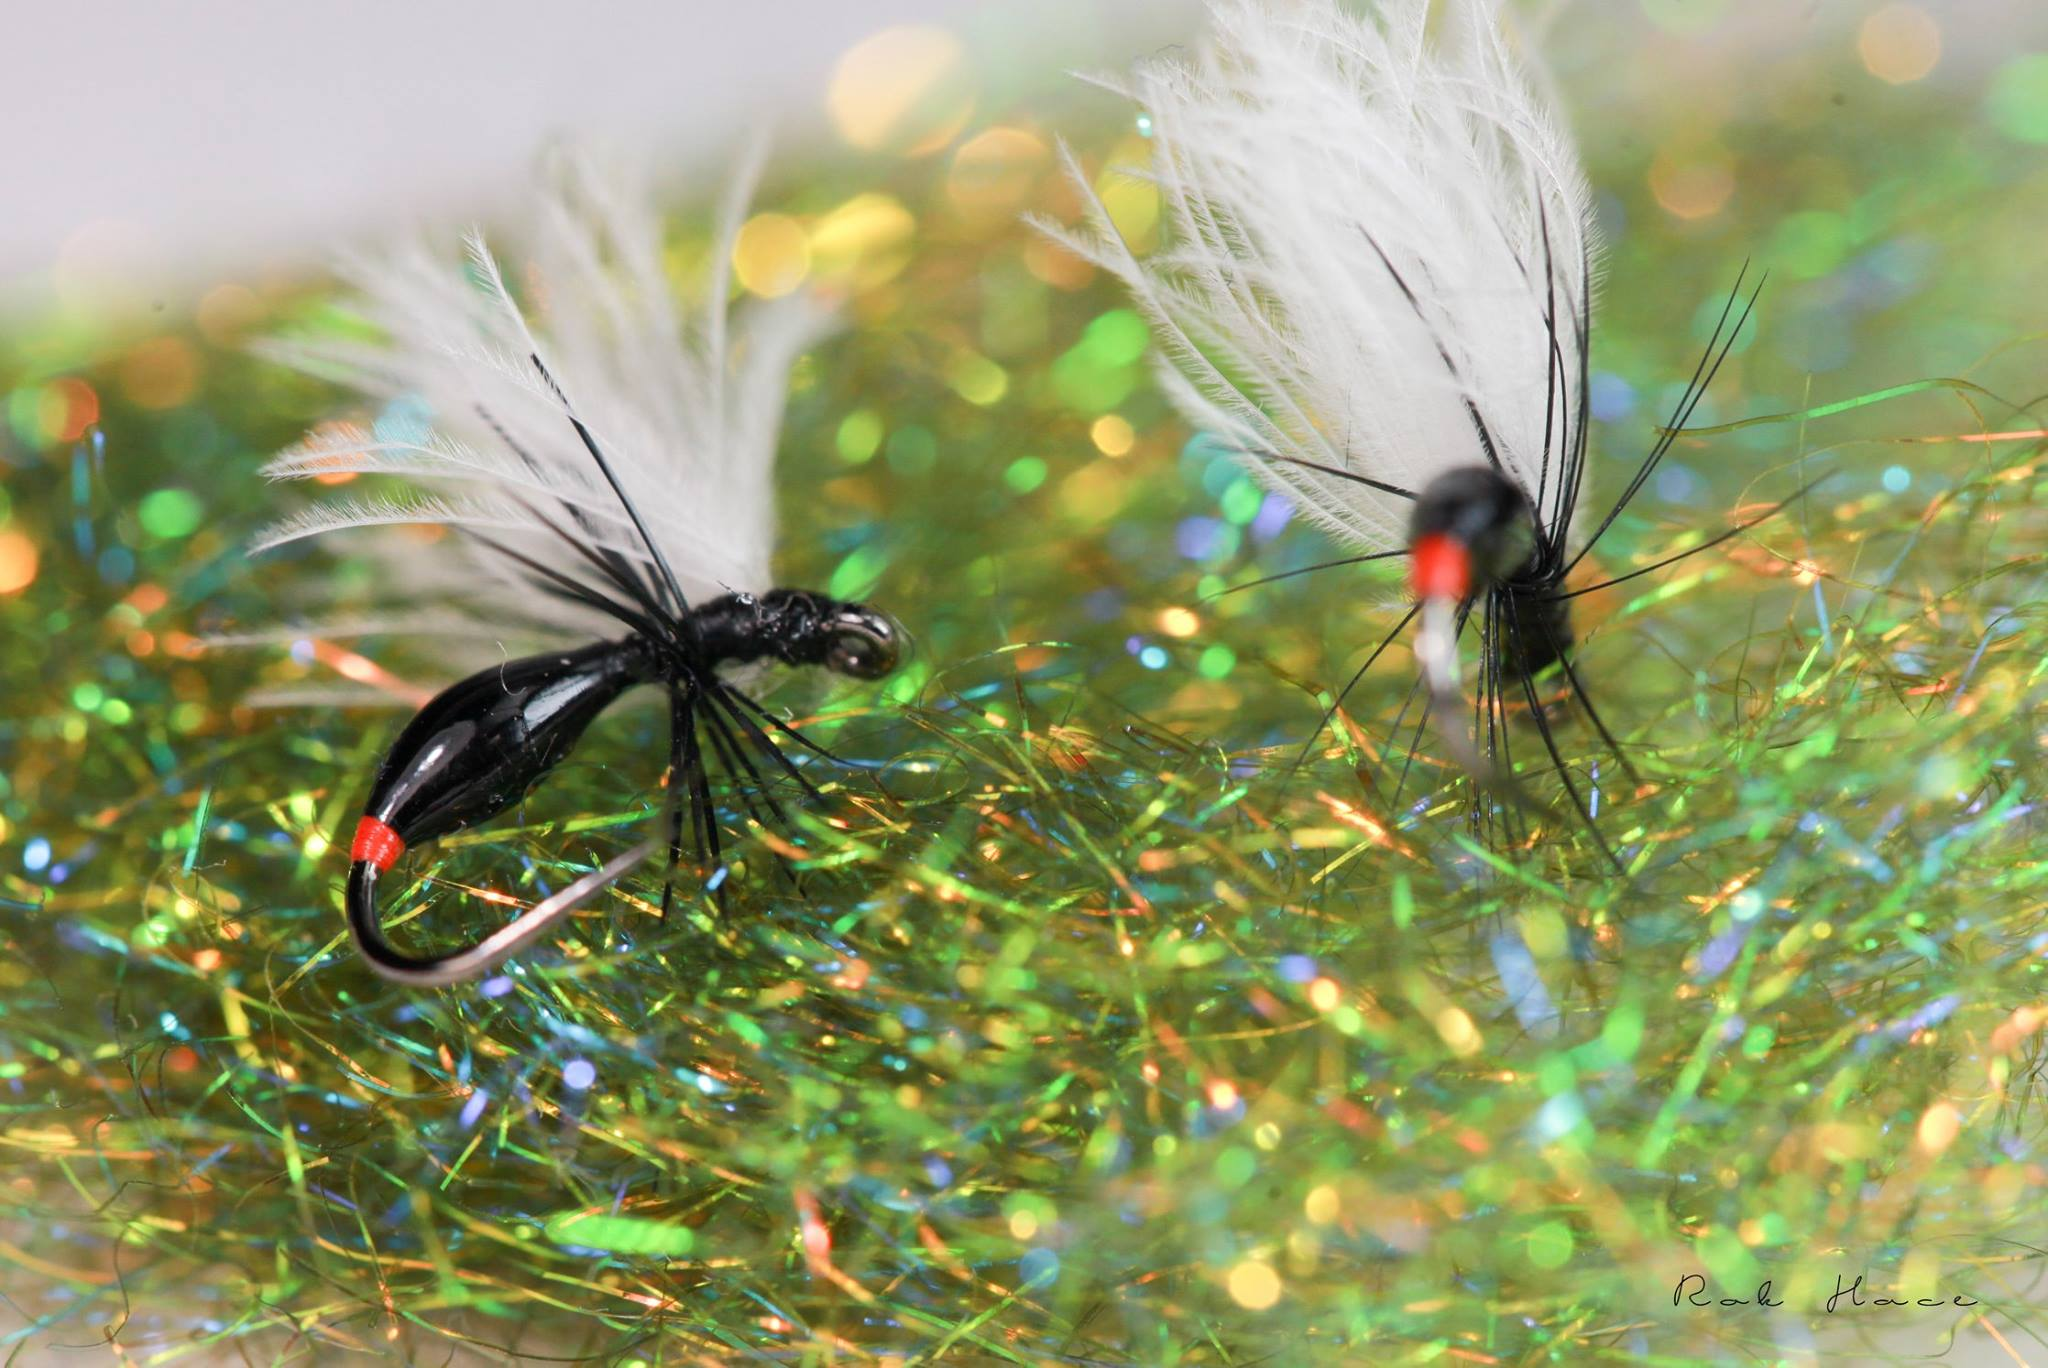 roc flies with troutline uv resin